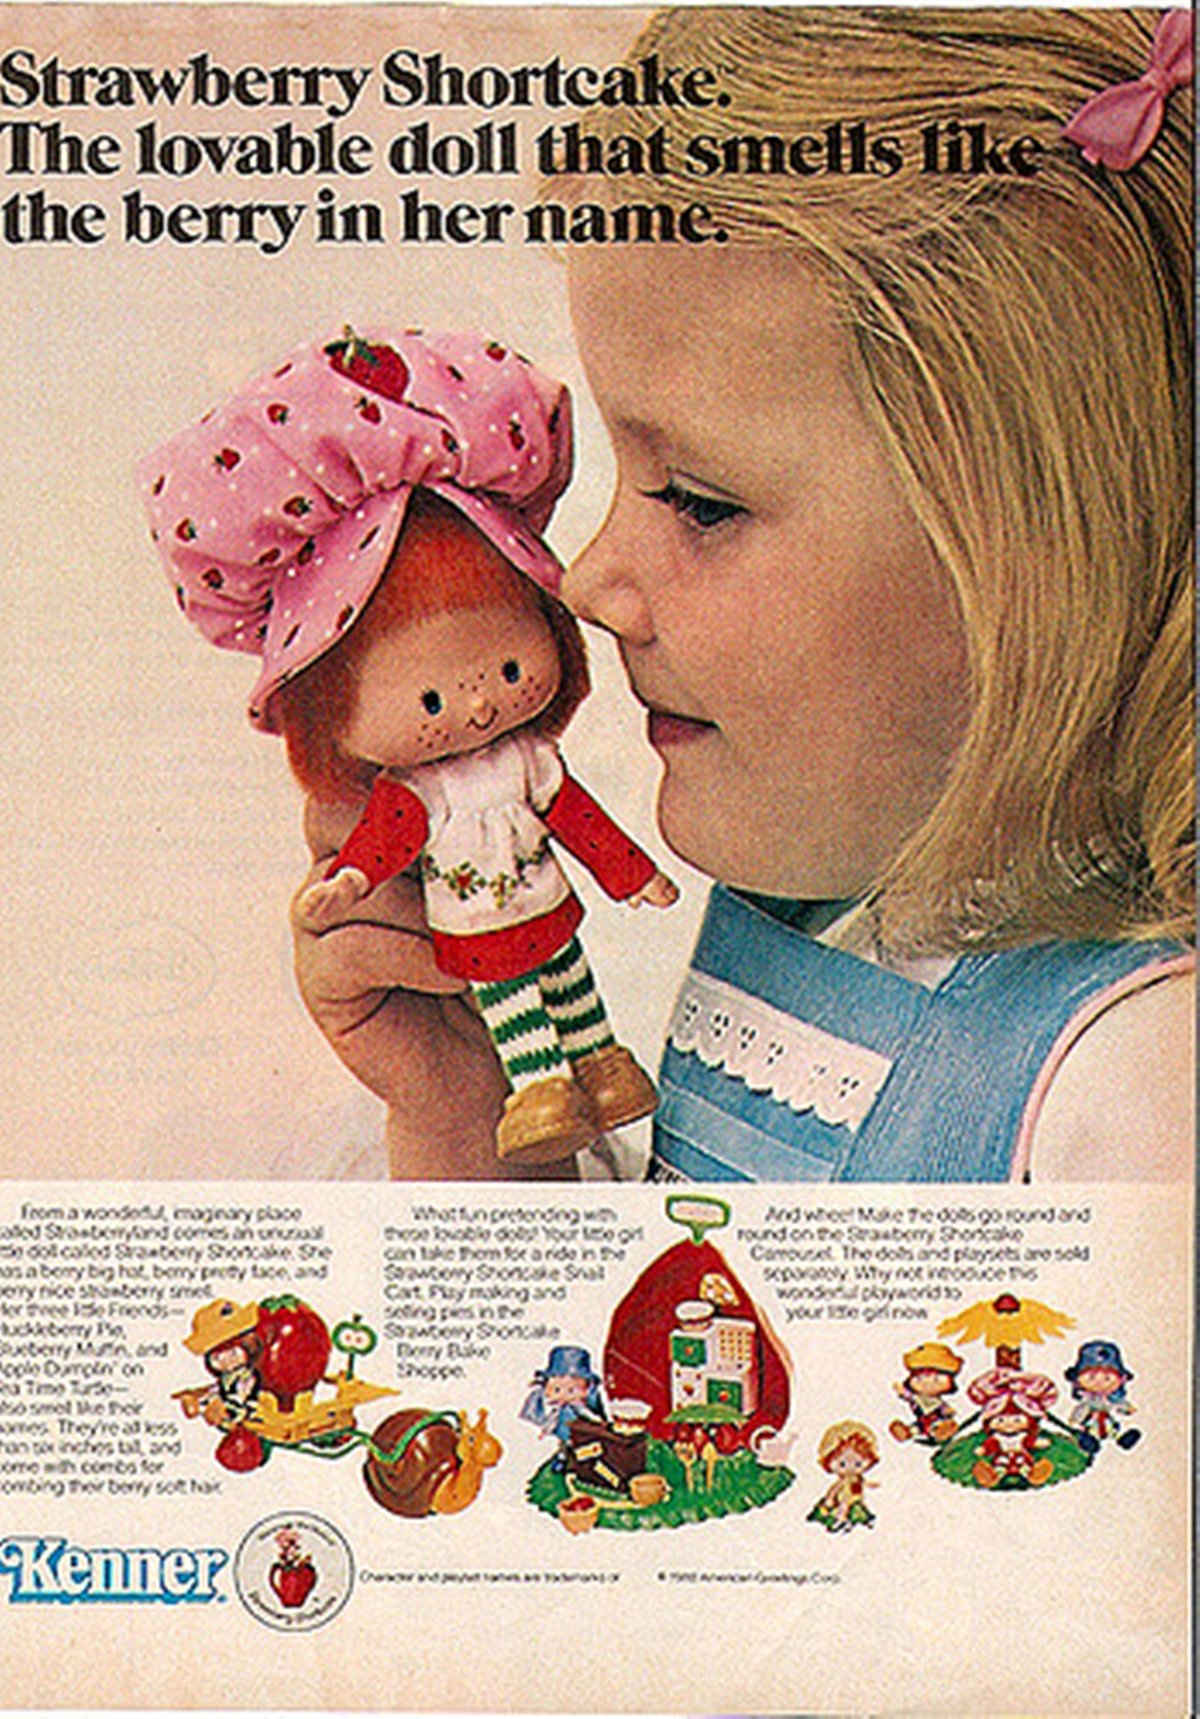 3 12 16 Retro Toy Adverts That Will Fill You With Nostalgia